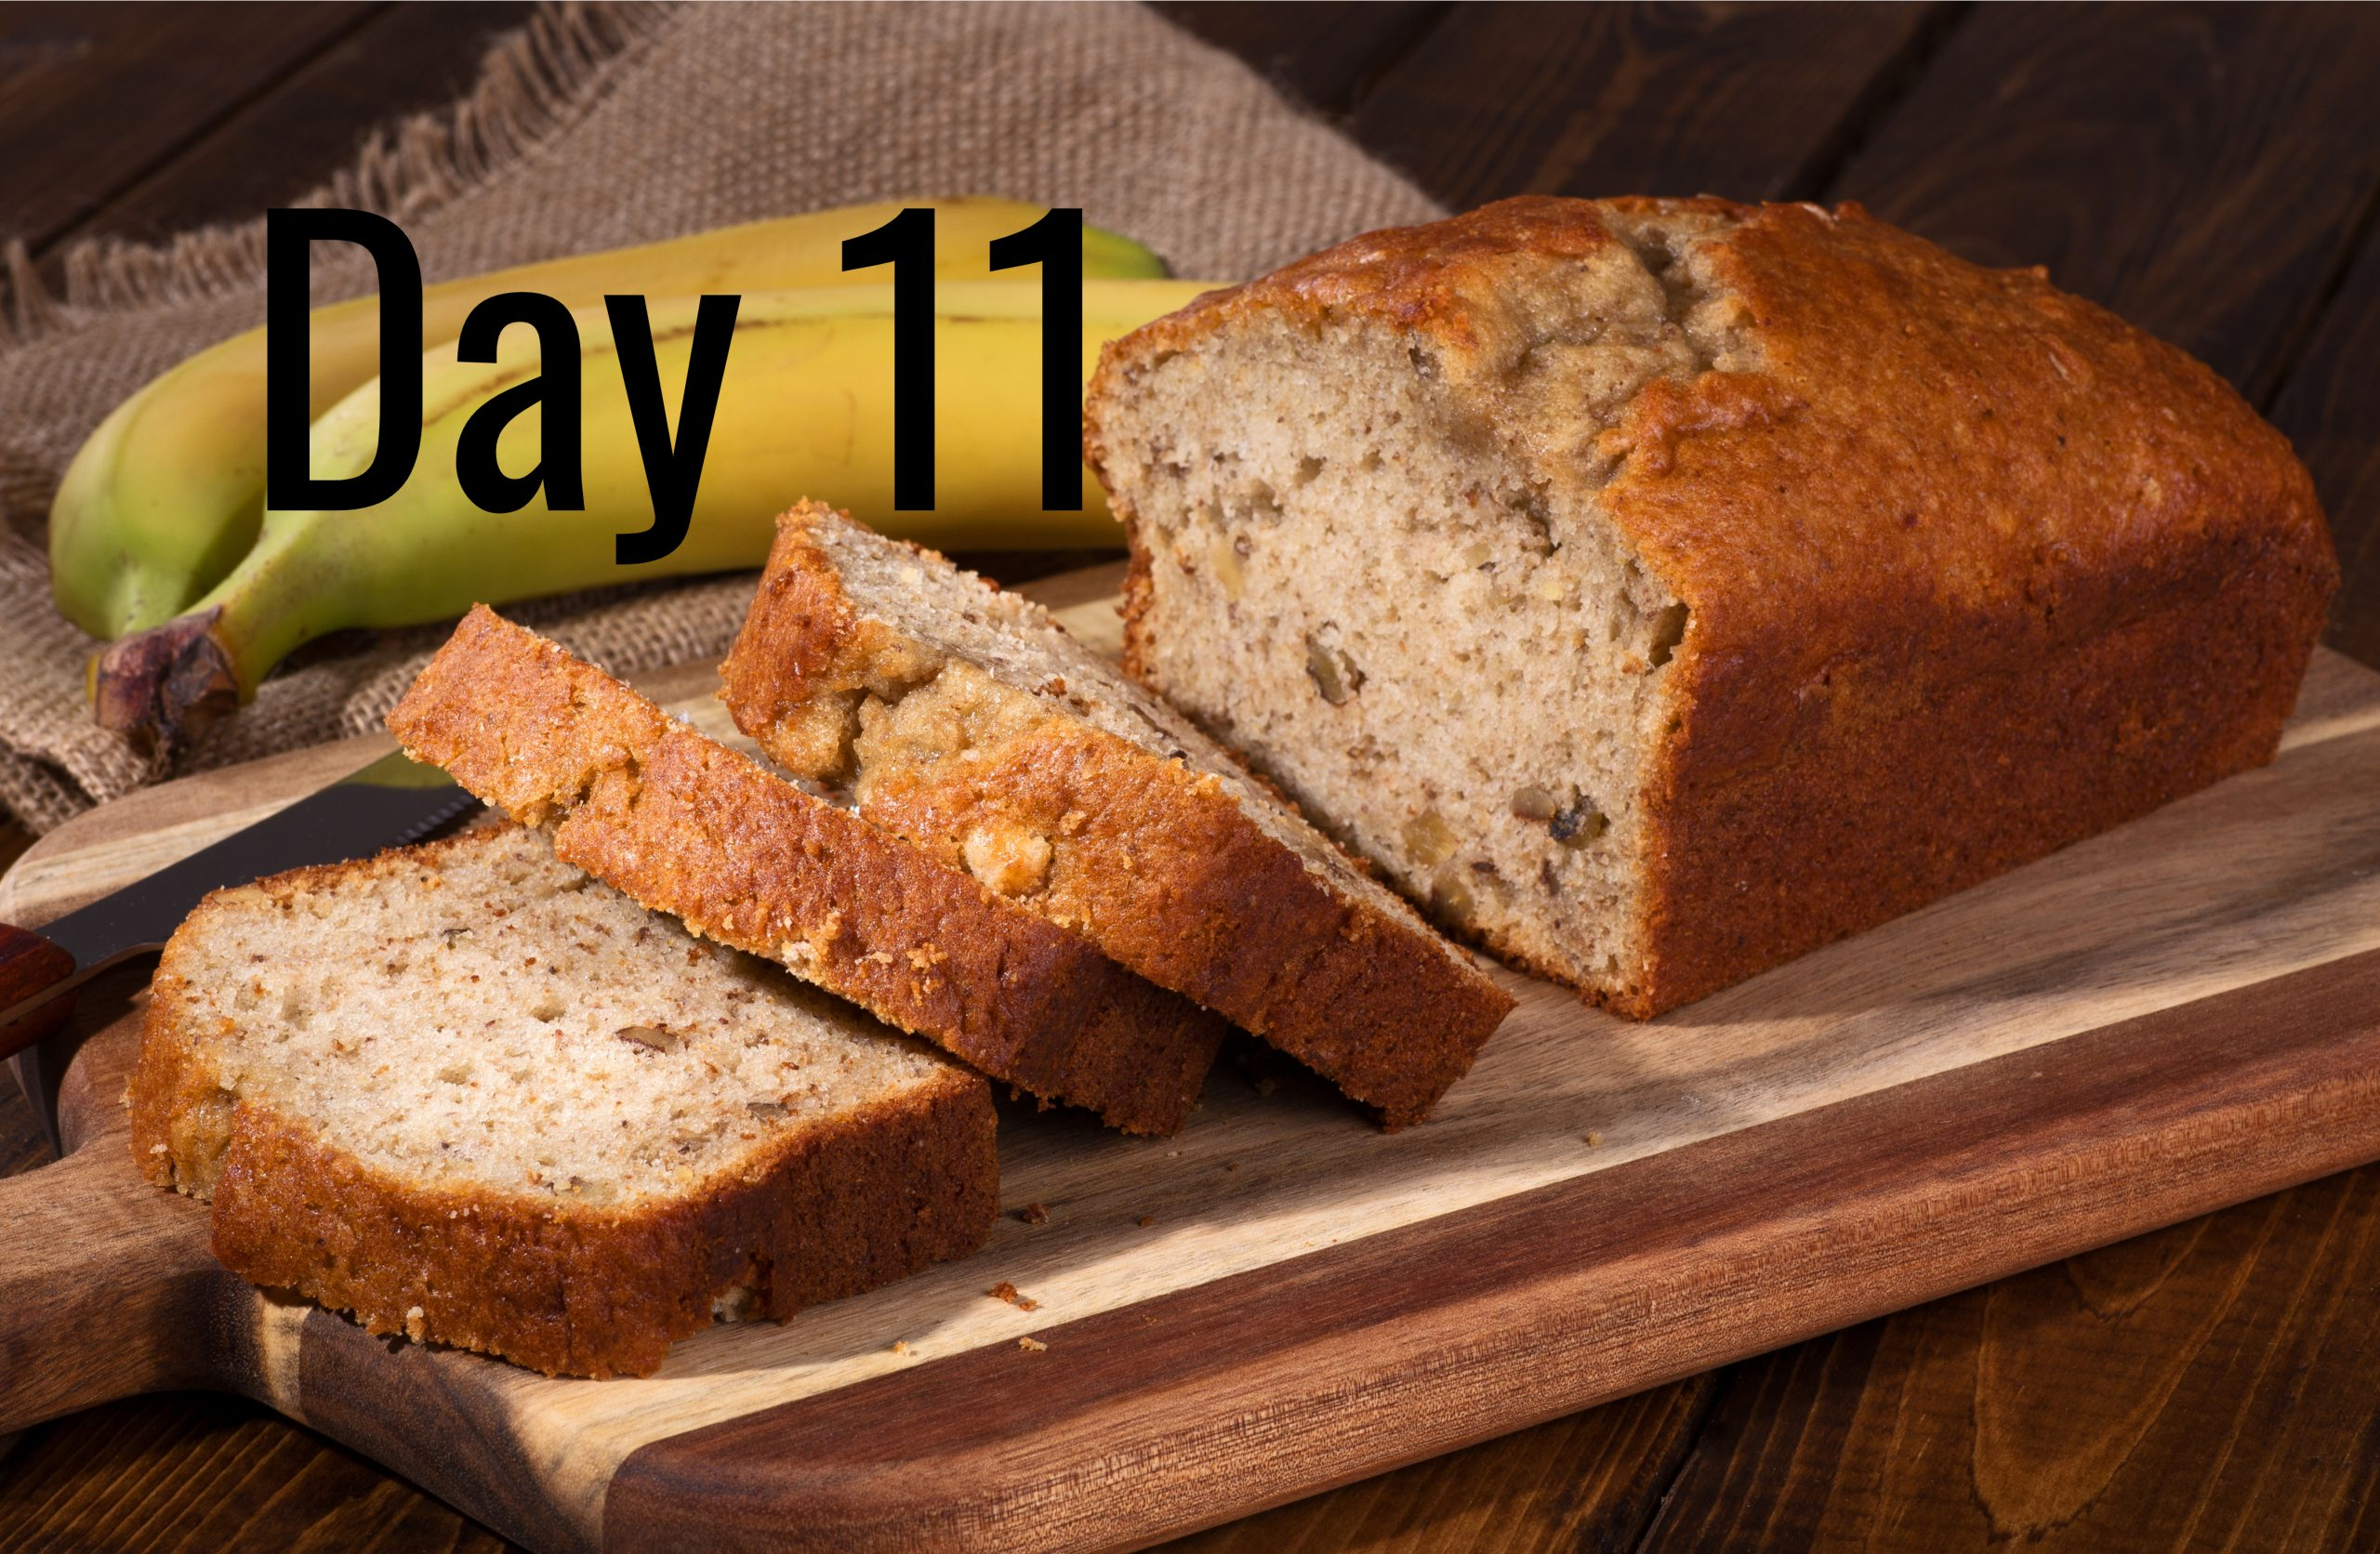 Day 11 – Have you made banana bread yet?